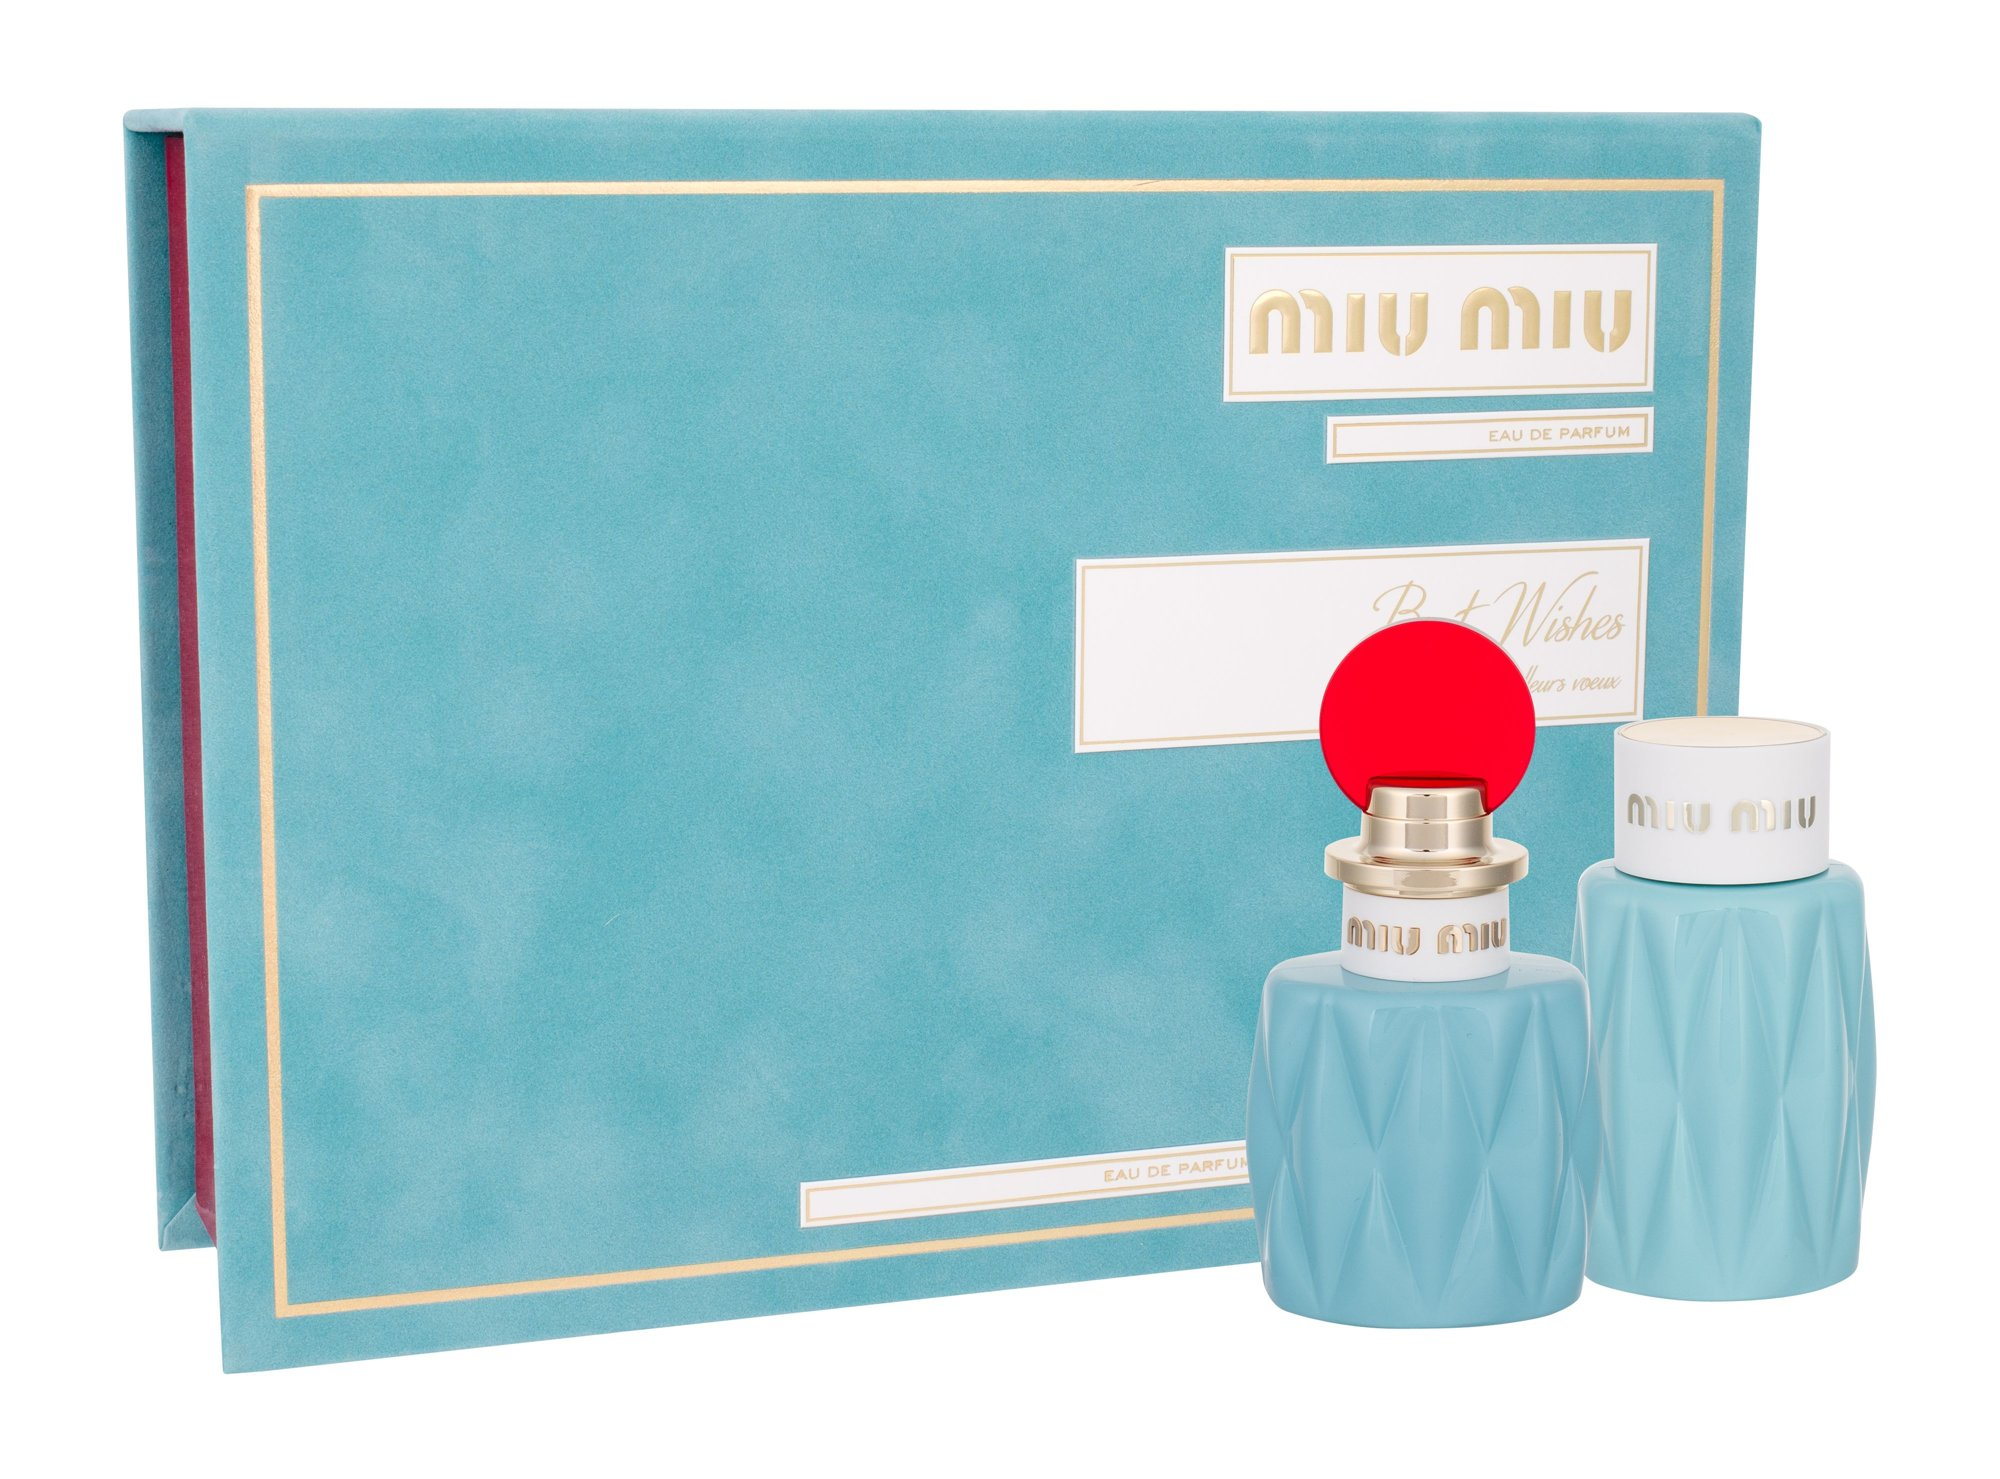 Miu Miu Miu Miu EDP 50ml